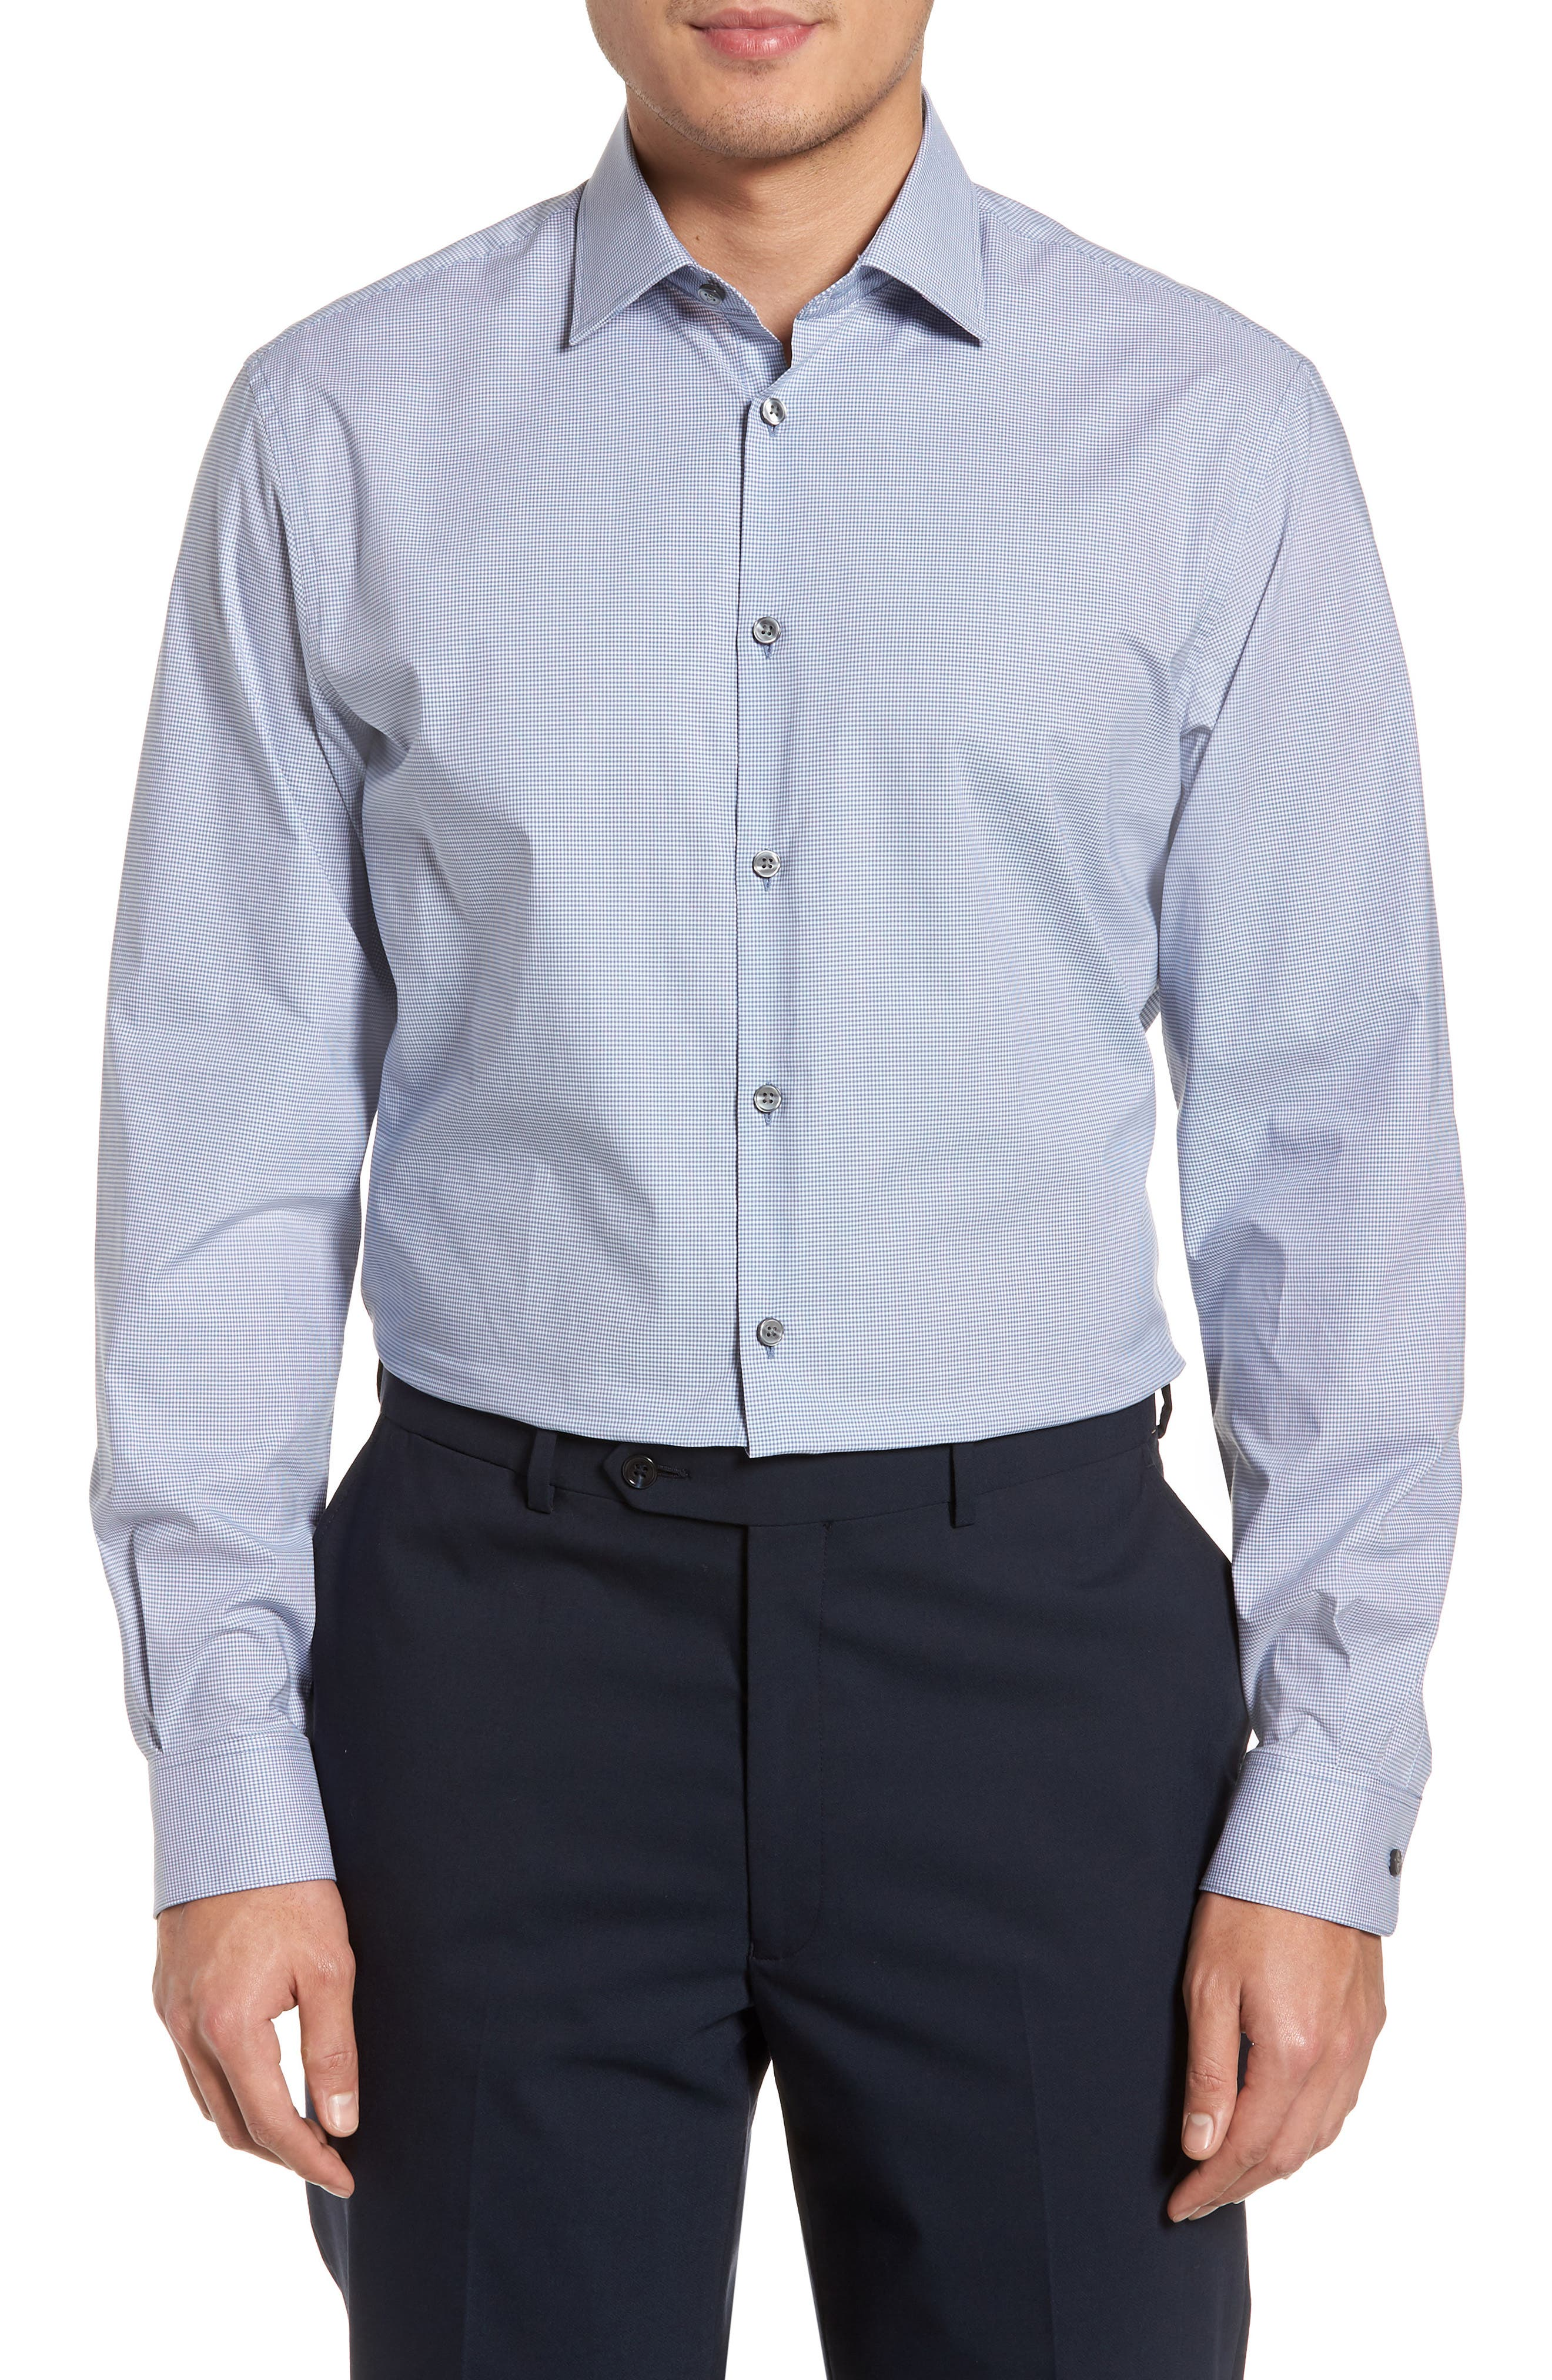 Regular Fit Stretch Microcheck Dress Shirt,                         Main,                         color, Dusted Blue